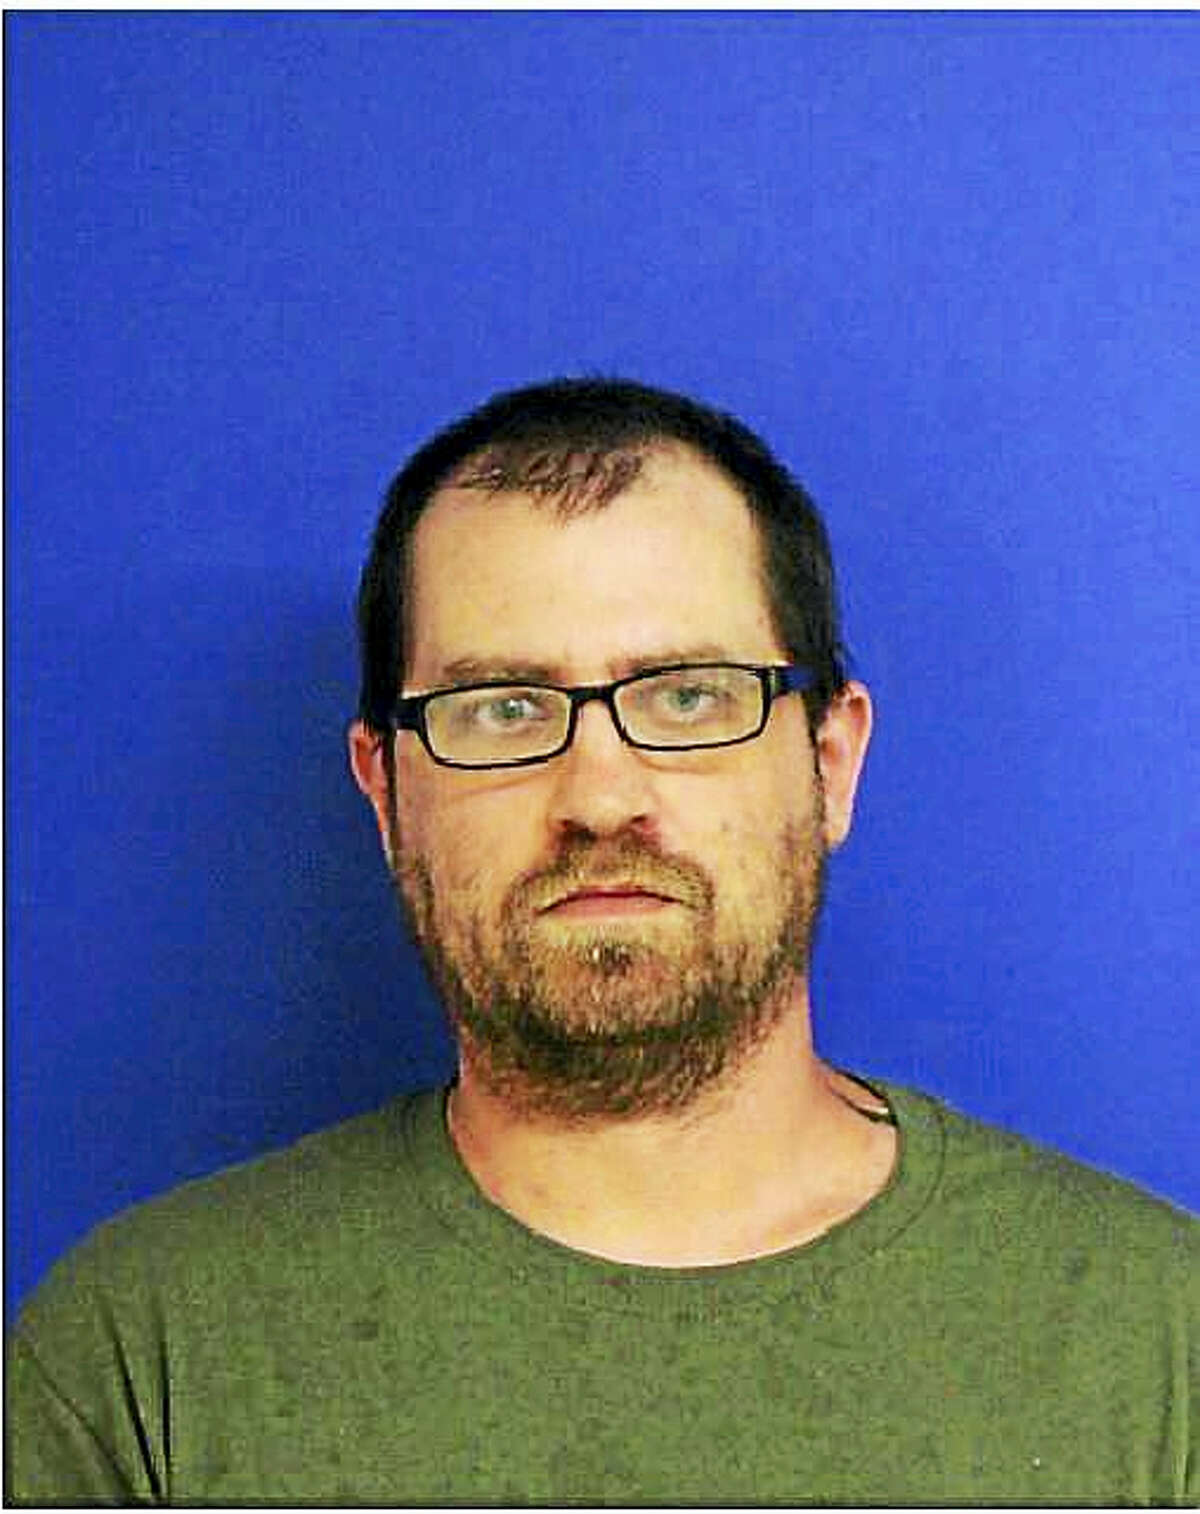 James Raymond was arrested on June 23, 2017 for issuing a bad check in connection with a wrestling event to benefit Autism awareness on April 24, 2017.